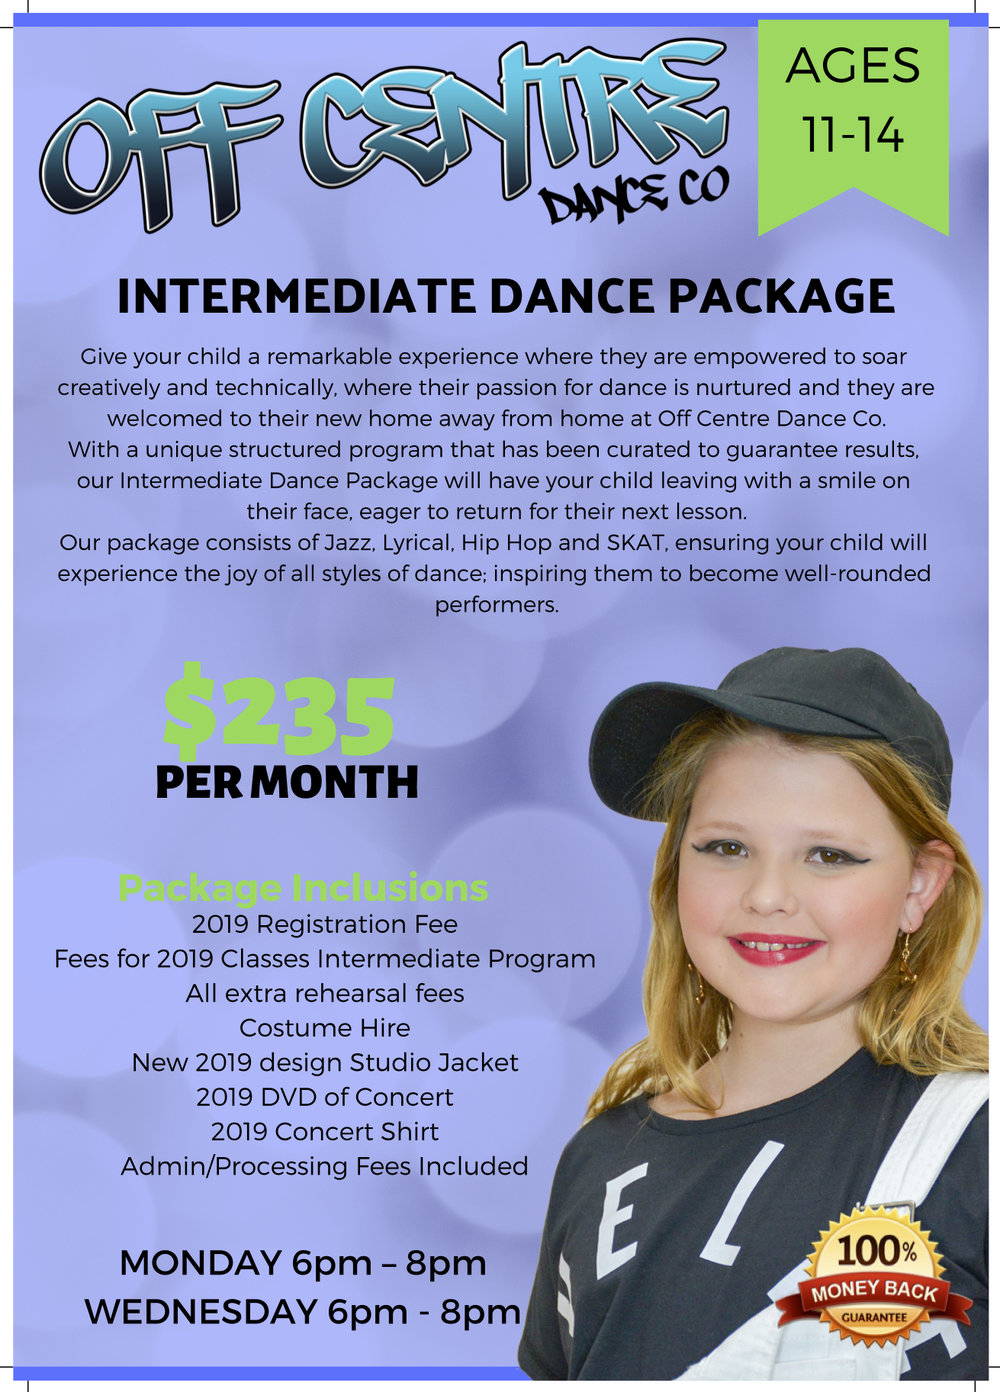 INTERMEDIATE DANCE PACKAGE.jpg